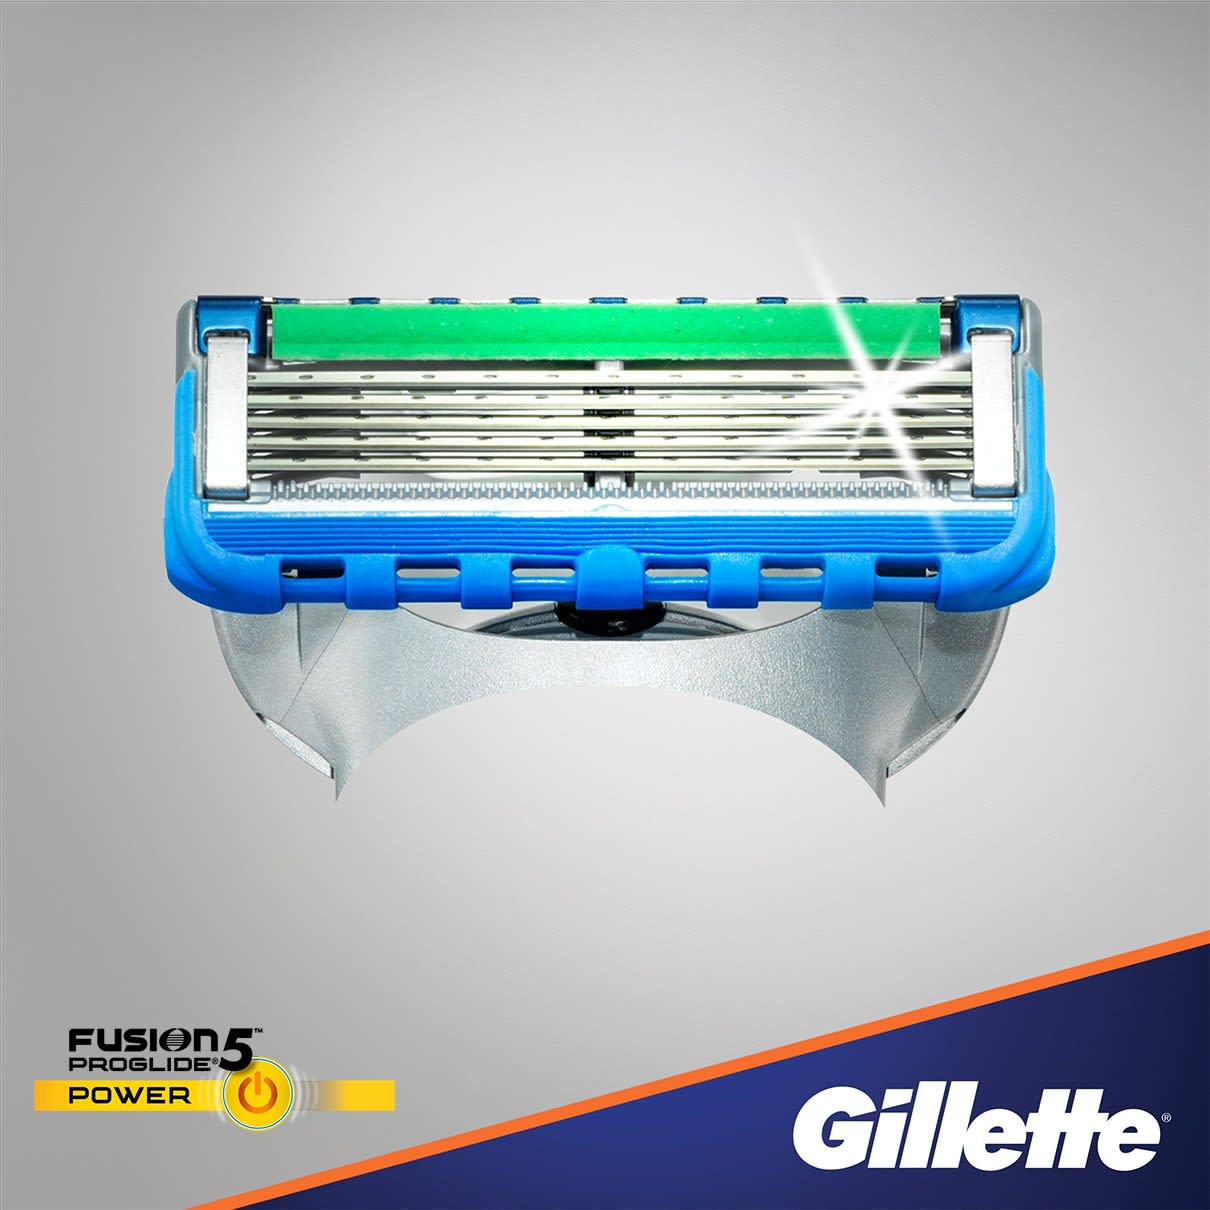 Gillette® Fusion5™ ProGlide® Power Men's Razor Blade Refills